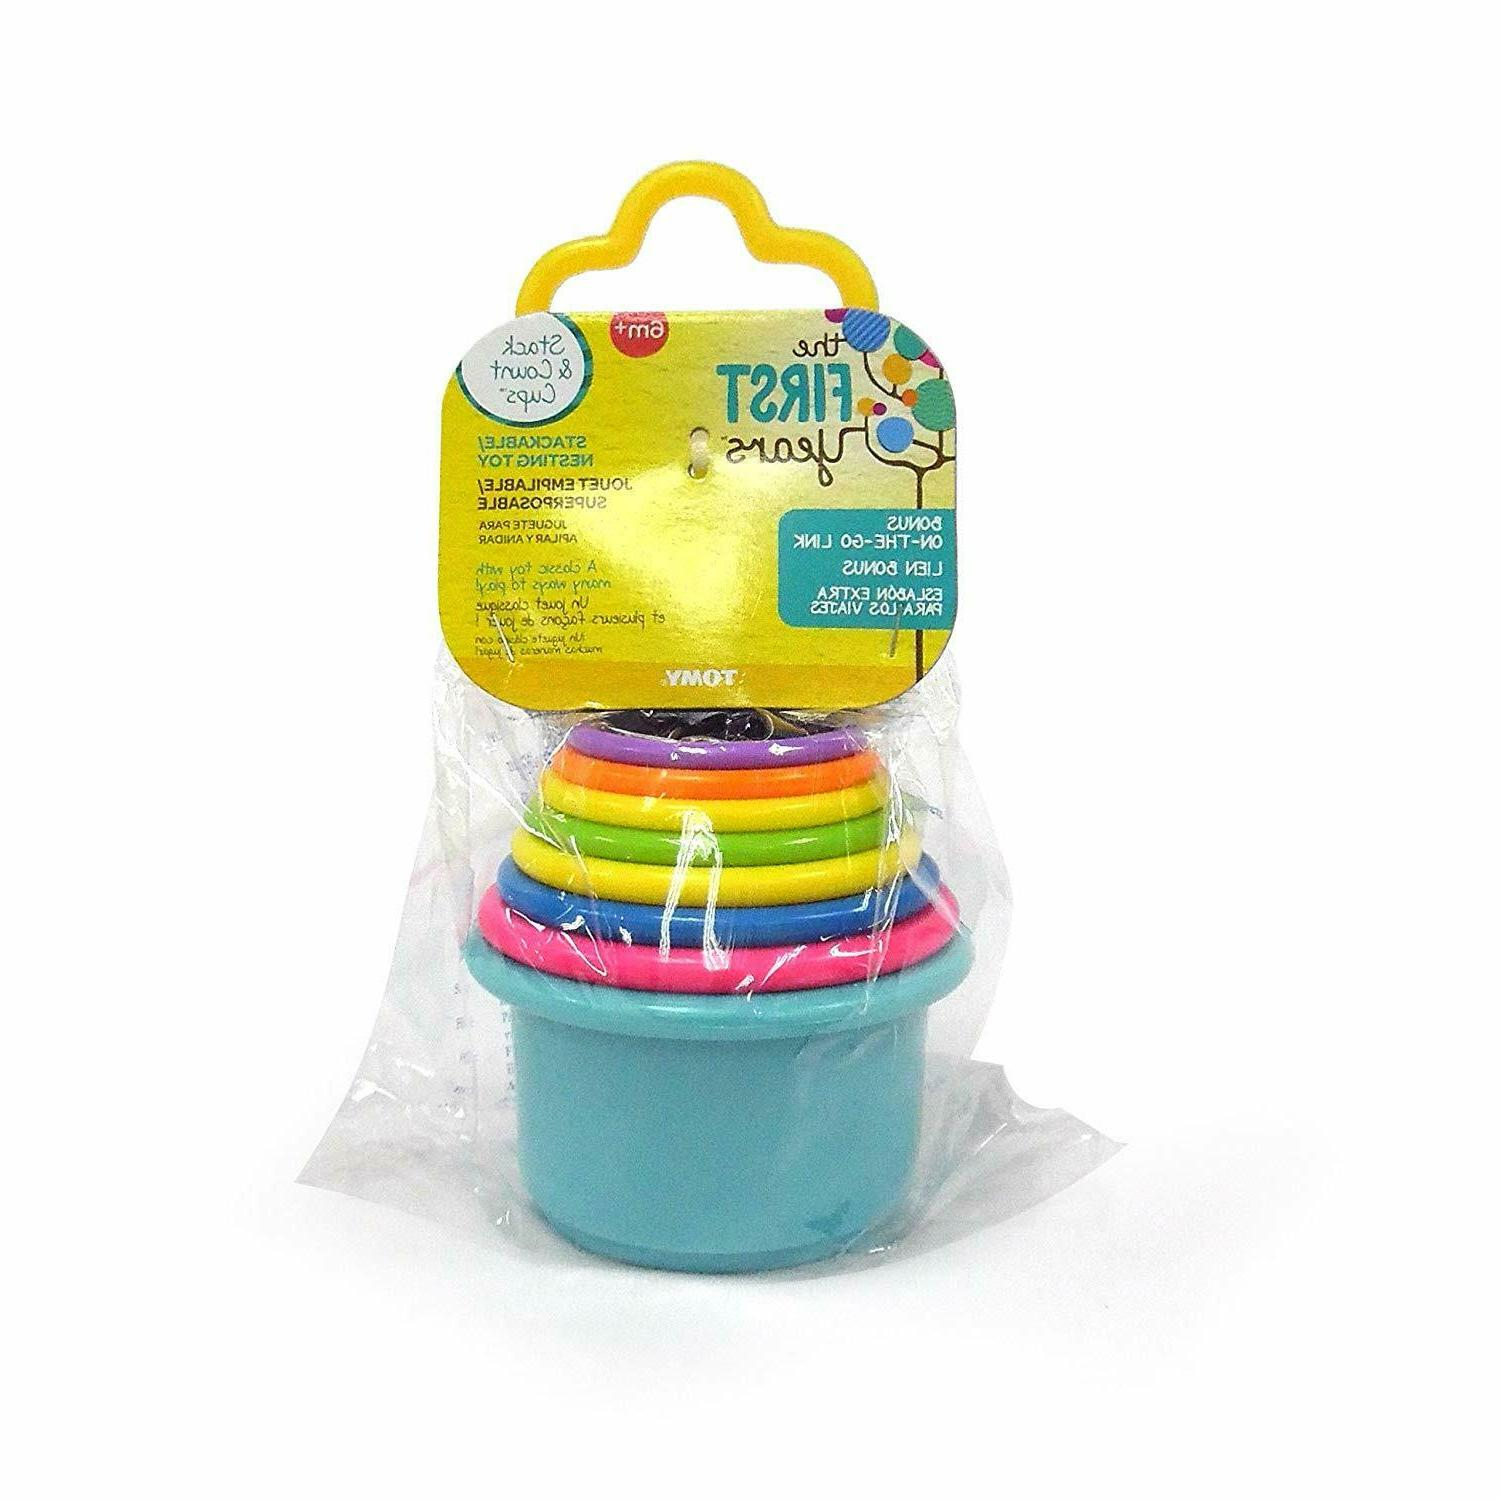 The First Up Cup Toys Count